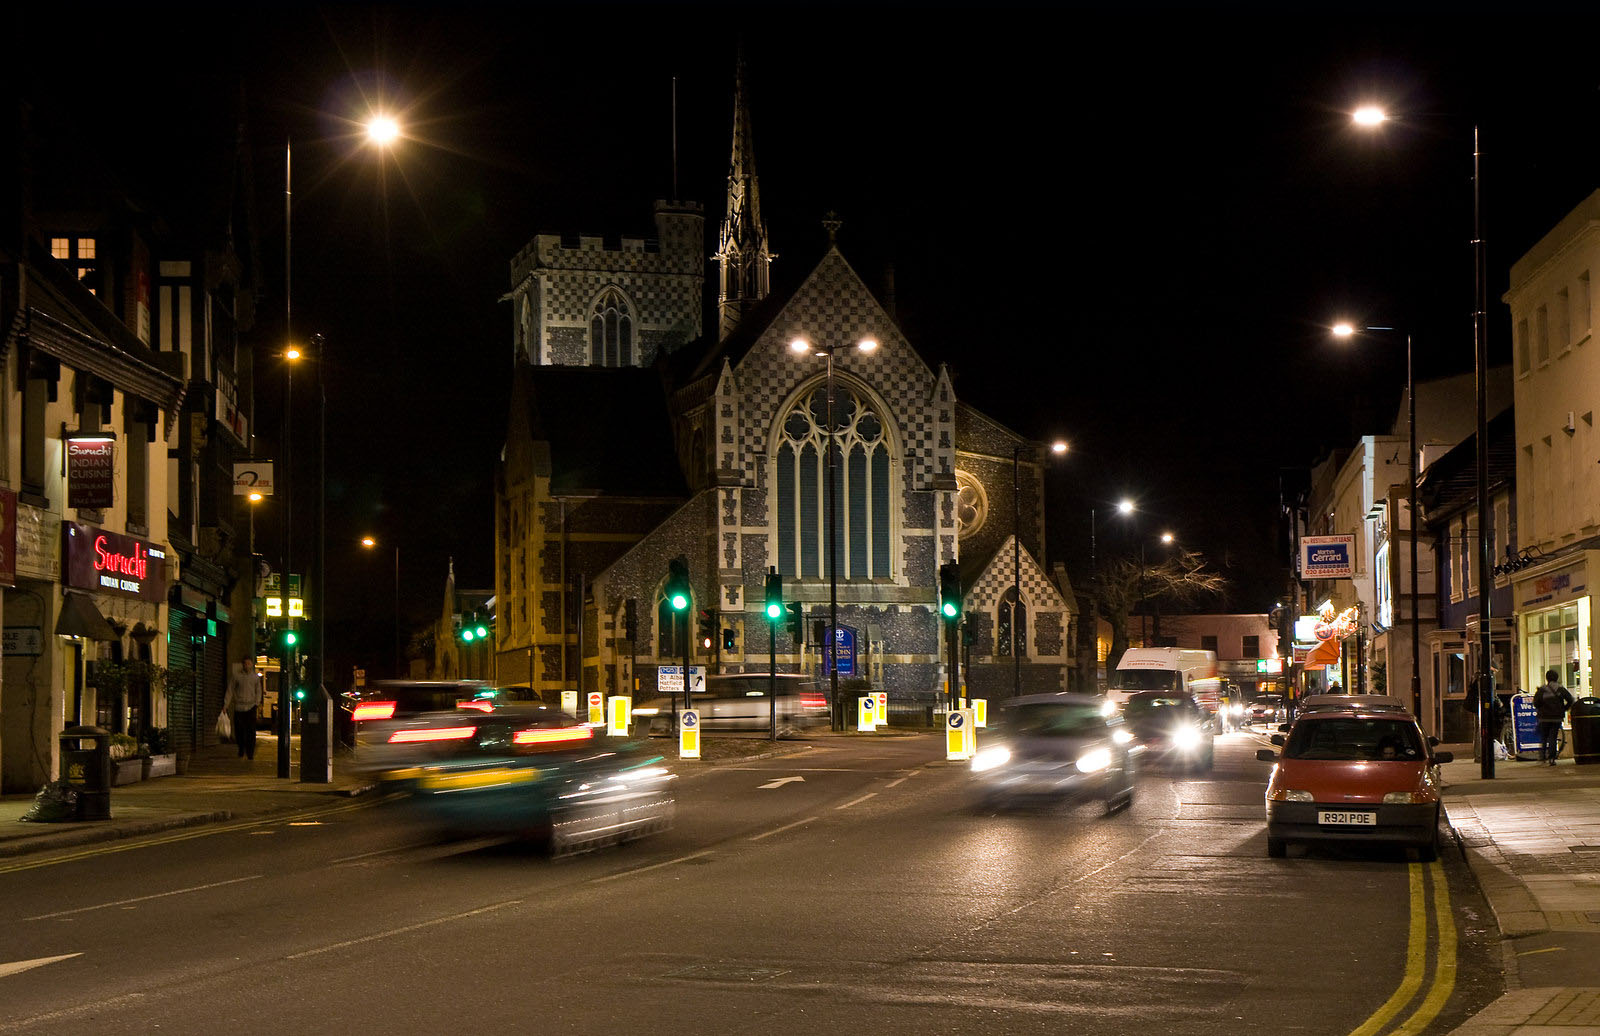 St. John The Baptist Church in Barnet at night-time.